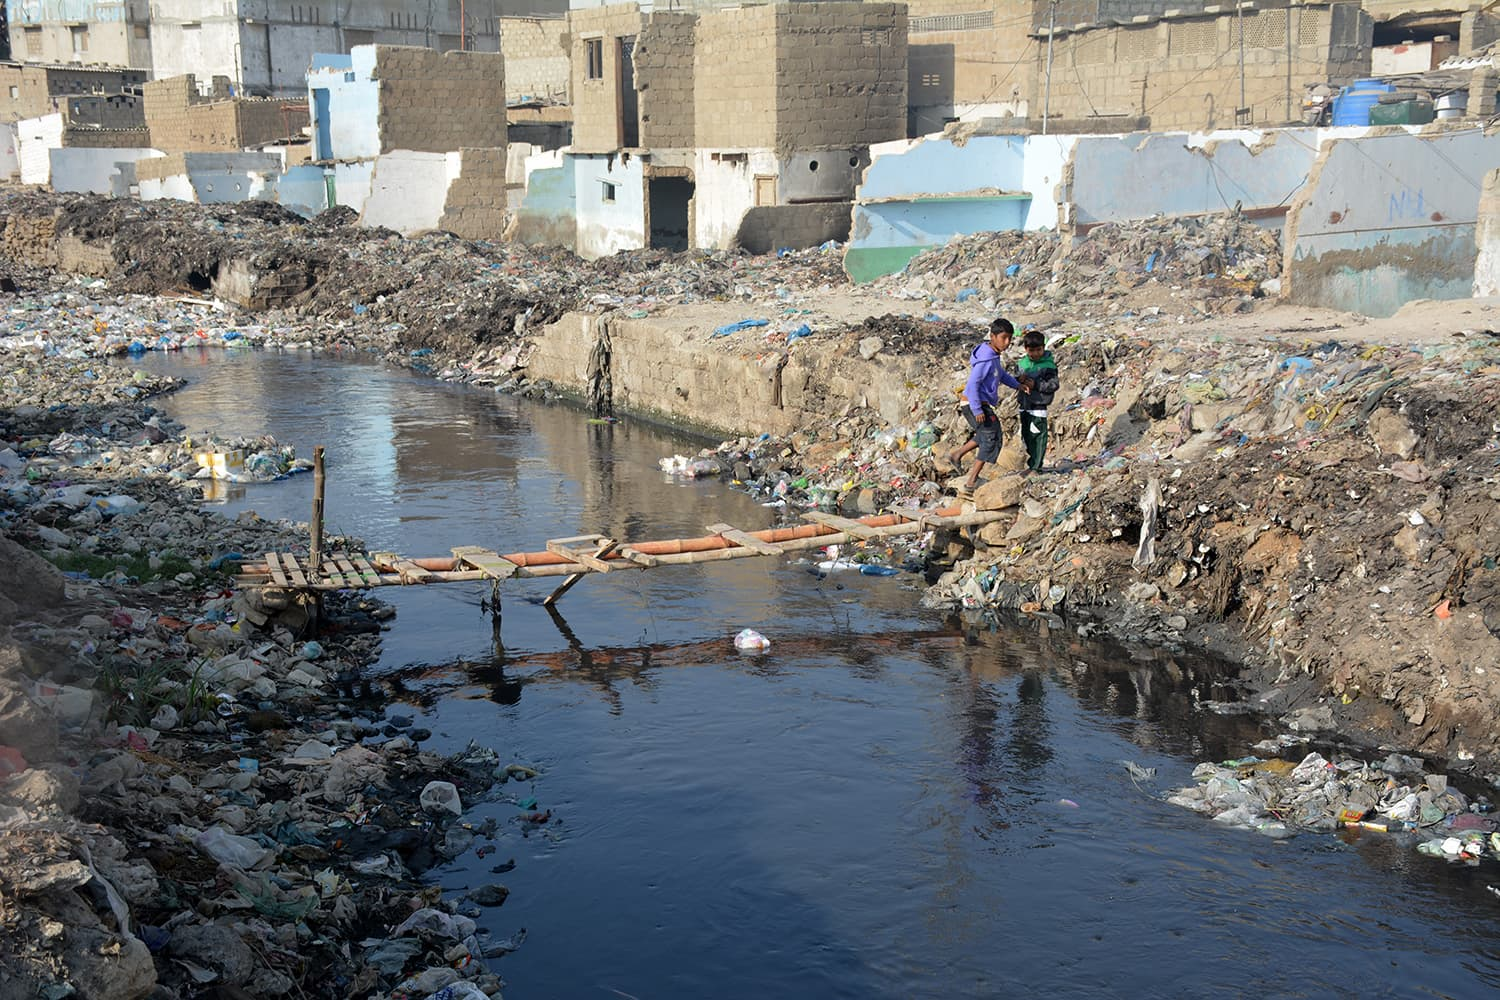 The drains are unable to carry to water as they are choked and their size capacity reduced.—Amar Guriro